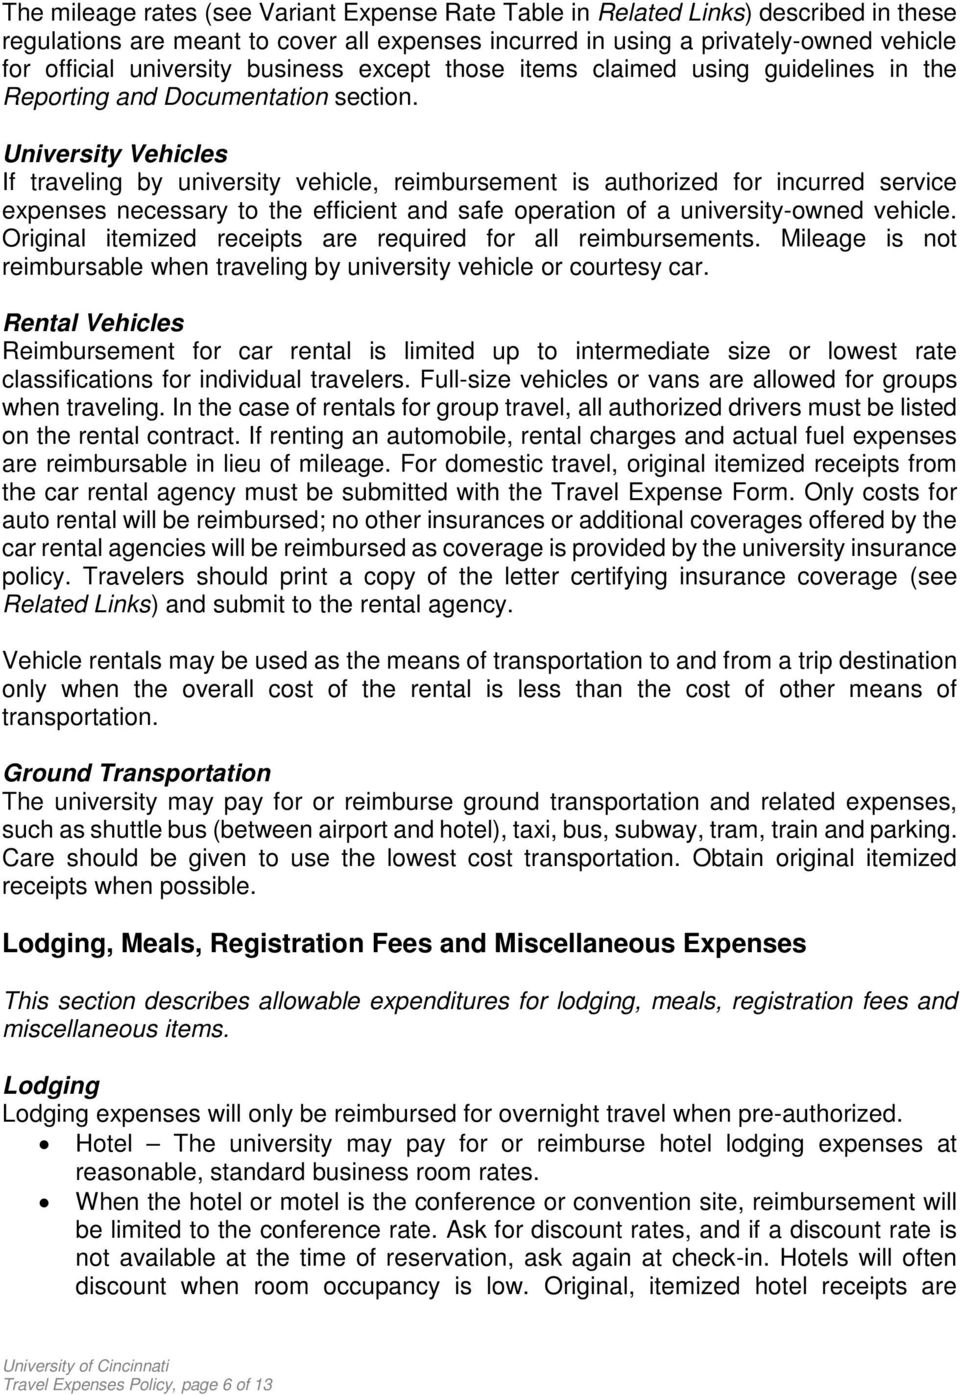 University Vehicles If traveling by university vehicle, reimbursement is authorized for incurred service expenses necessary to the efficient and safe operation of a university-owned vehicle.